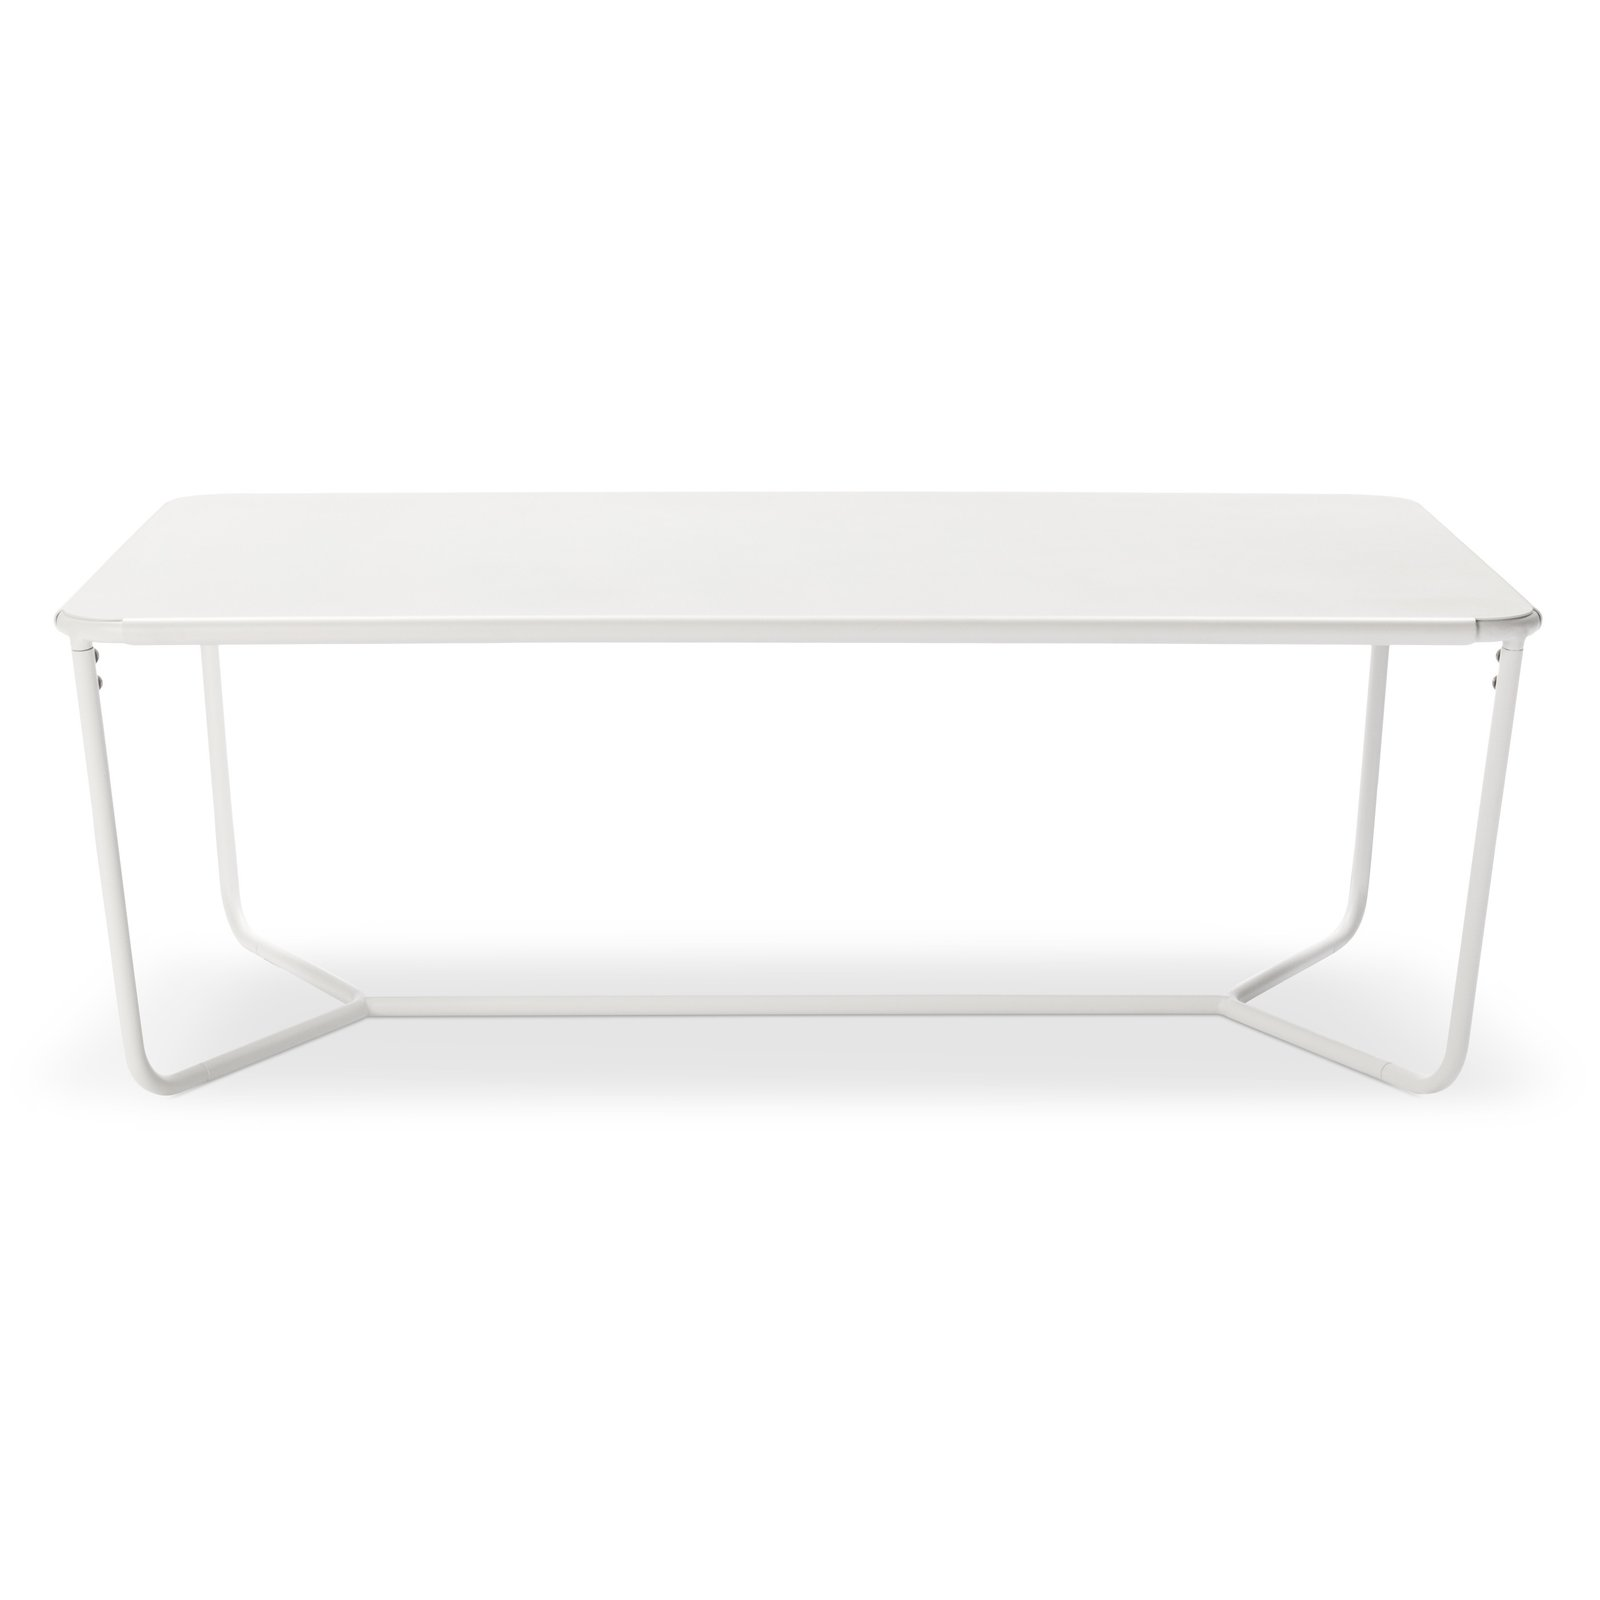 Outdoor Coffee Table, $129.99; available in gray or white; designed by Chris Deam and Nick Dine for Modern by Dwell Magazine for Target   Photo 12 of 17 in Modern by Dwell Magazine: Outdoor Collection